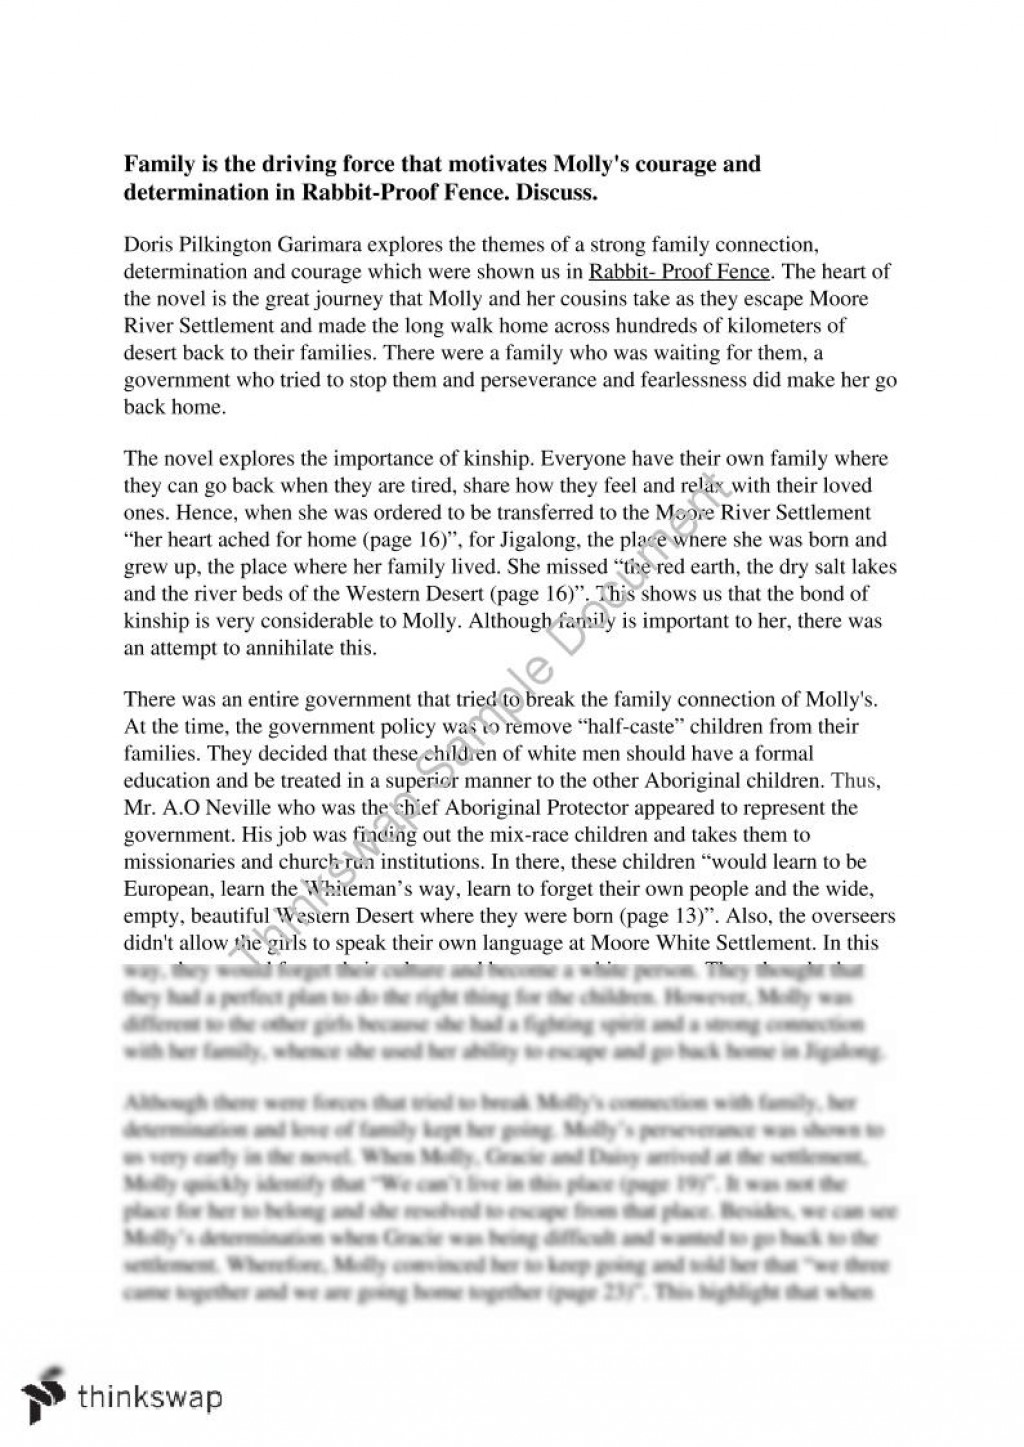 007 Essay Example 96427 Textresponseealcore Docx Fadded41 Rabbit Proof Fence Film Top Review Large